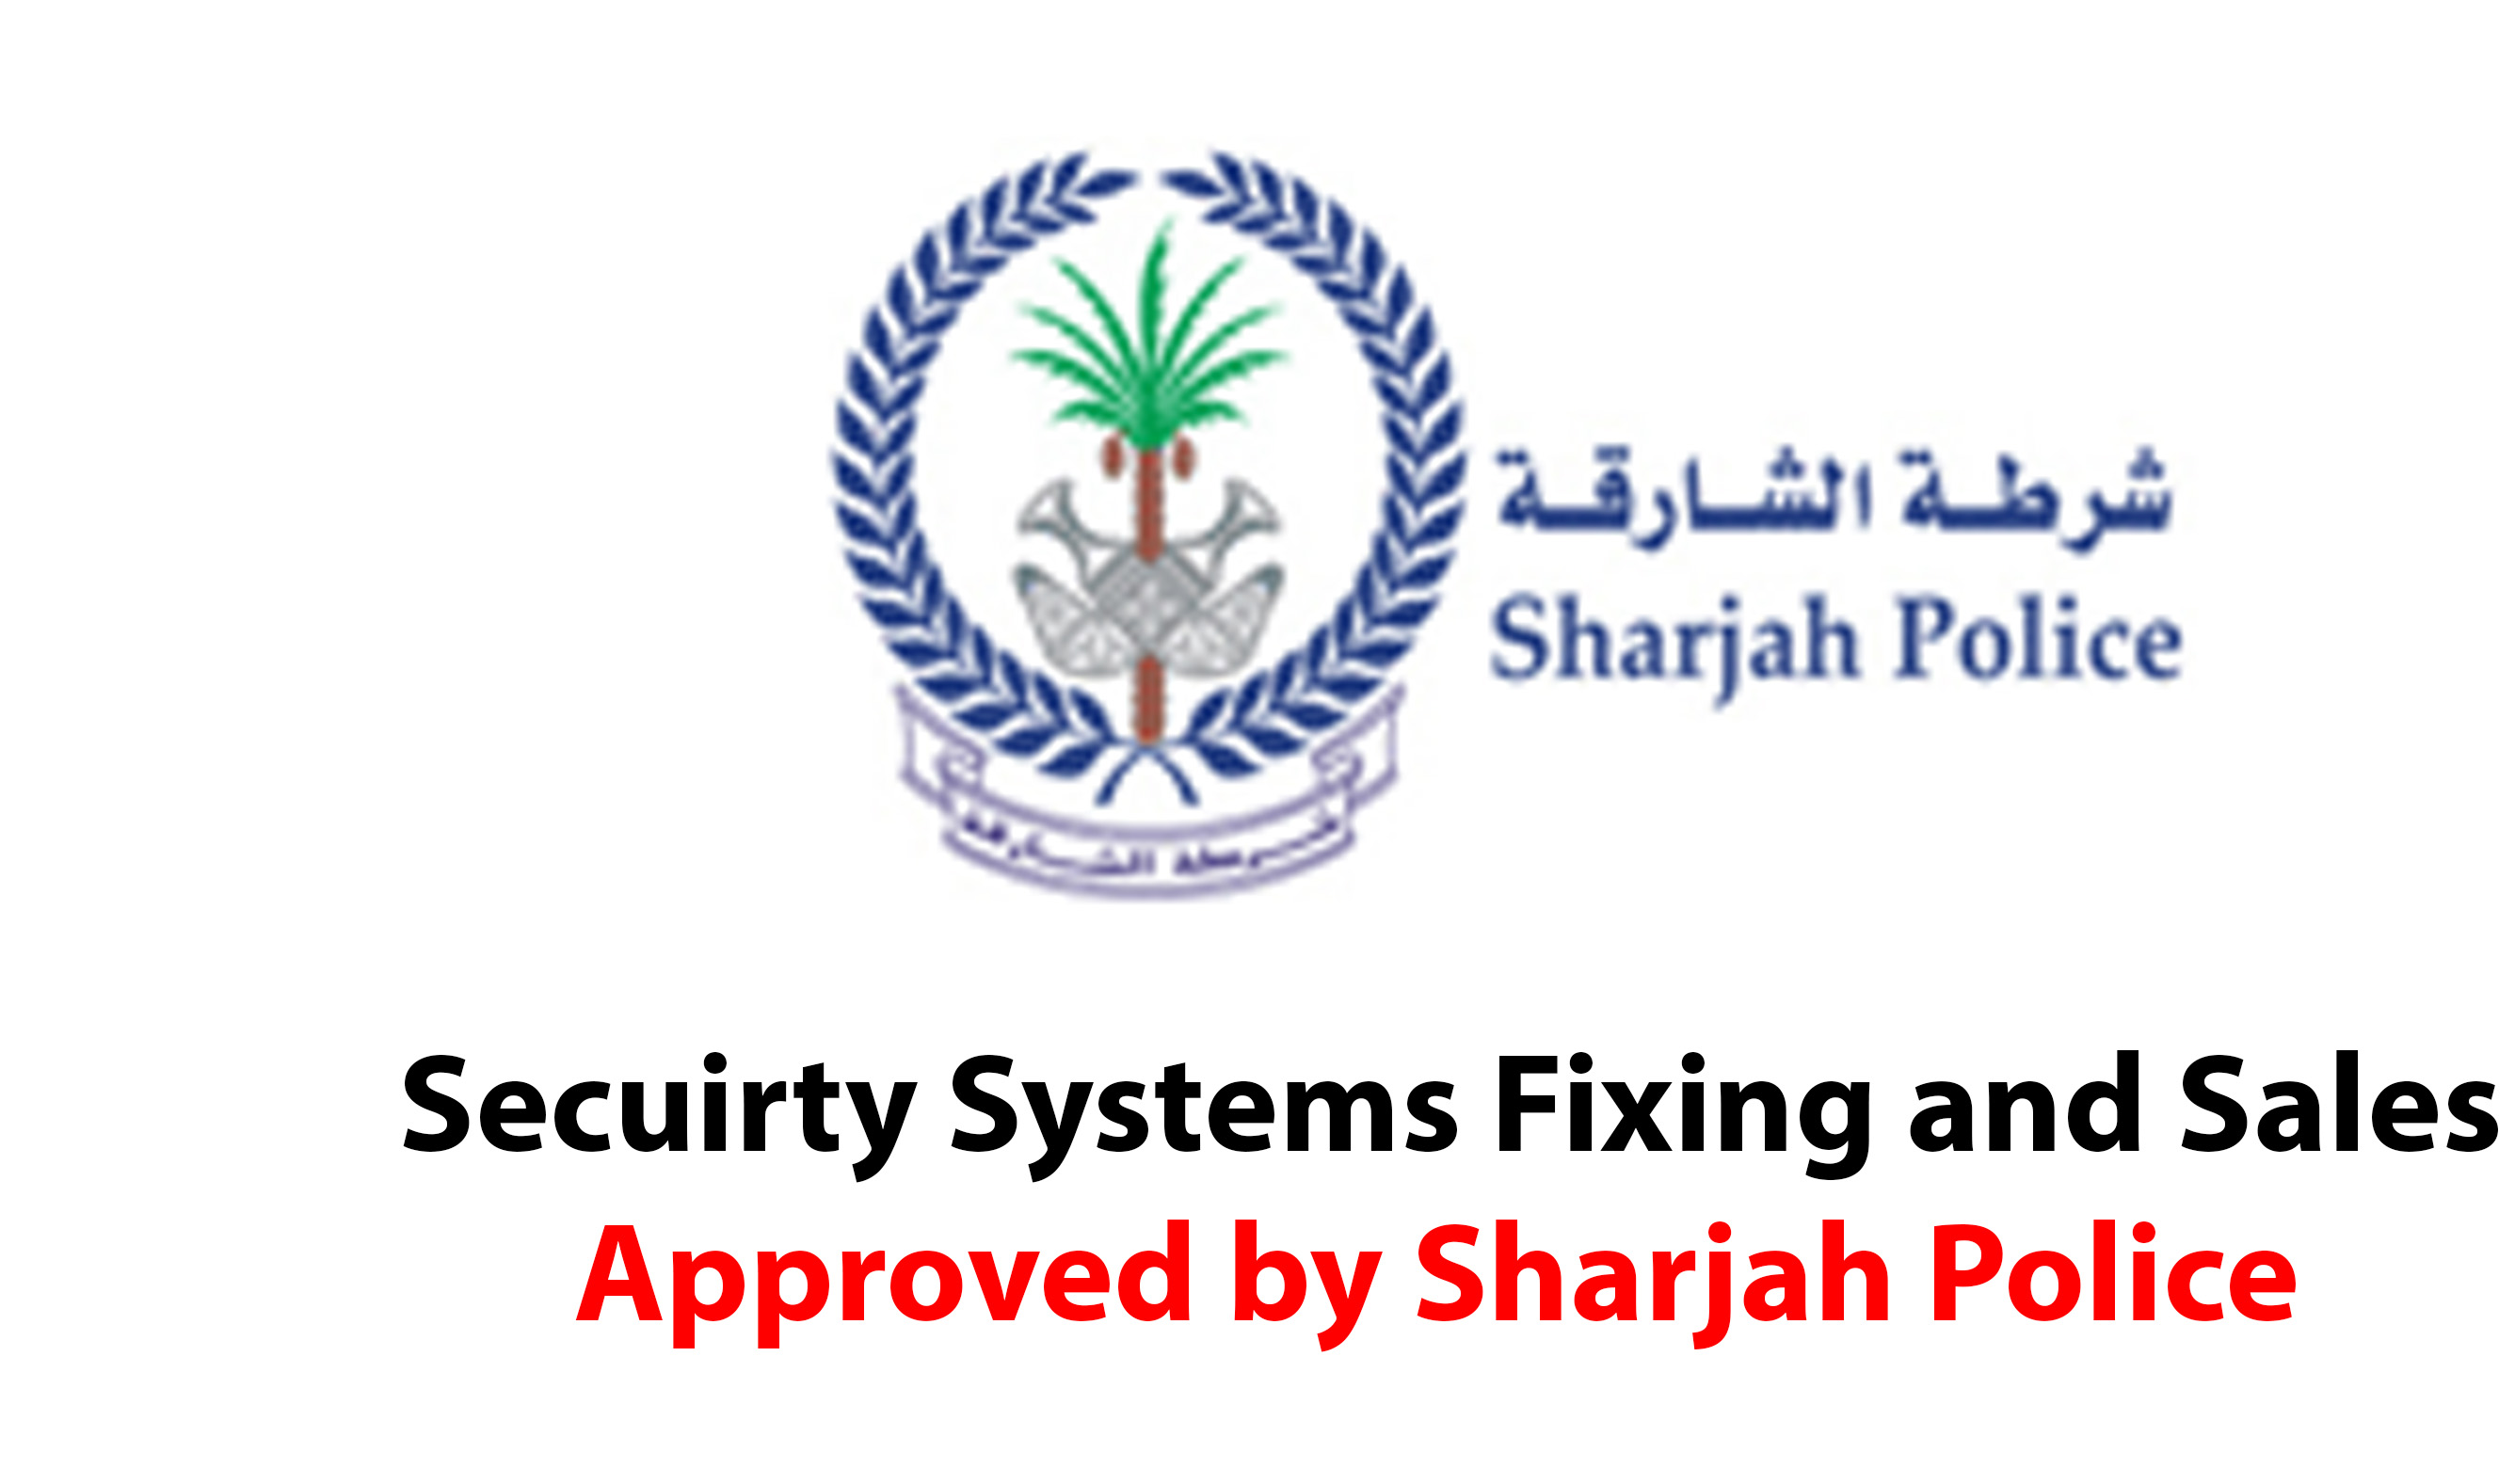 Cctv Camera Sharjah Police Approval For Sales And